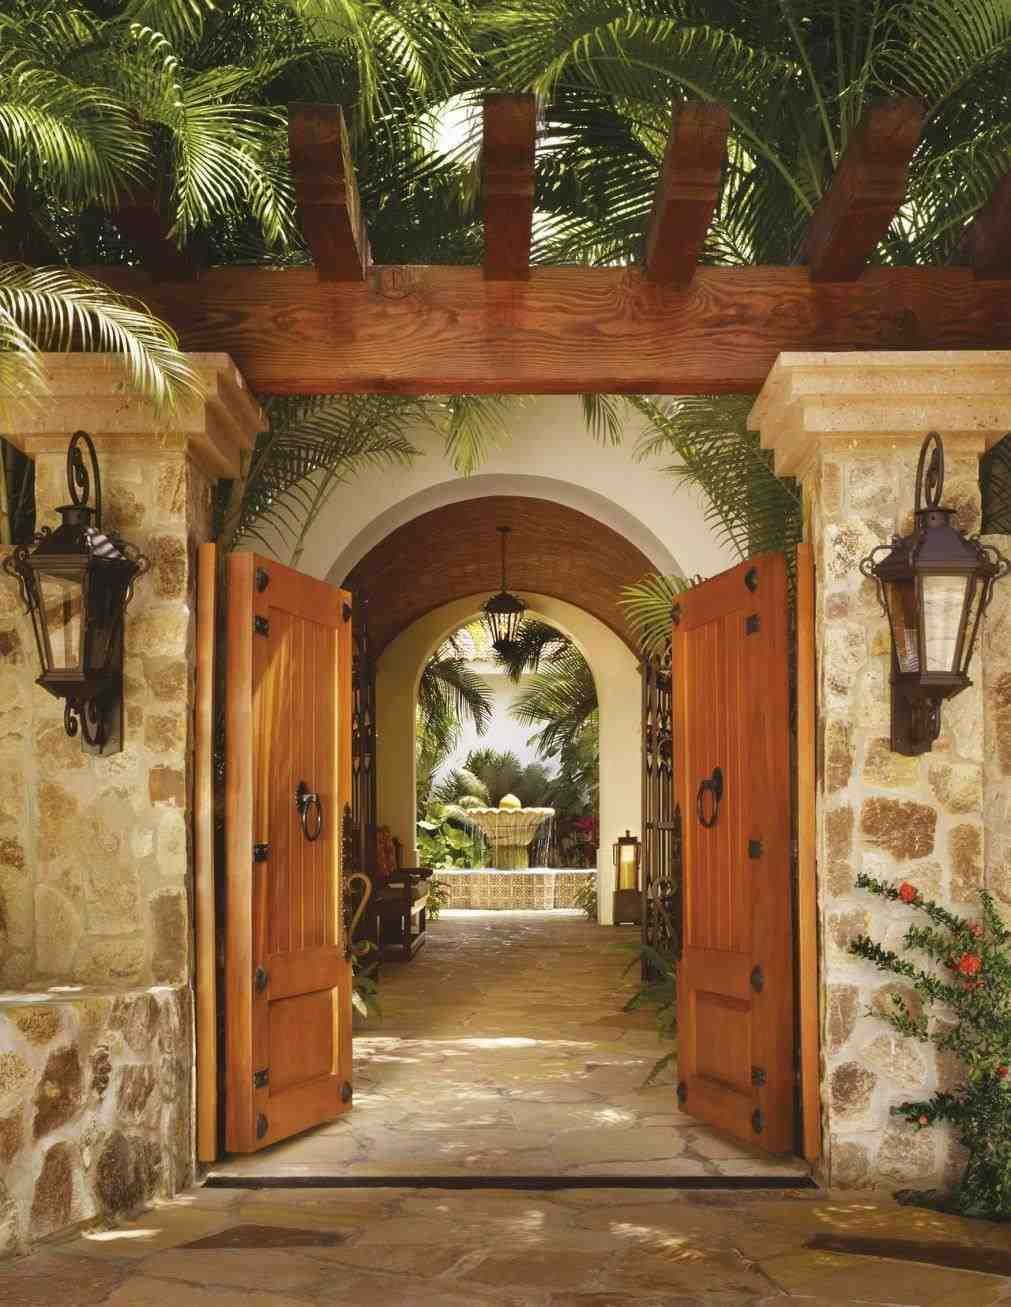 Pin by Spanish Style Home Decor on Spanish style homes | Pinterest ...